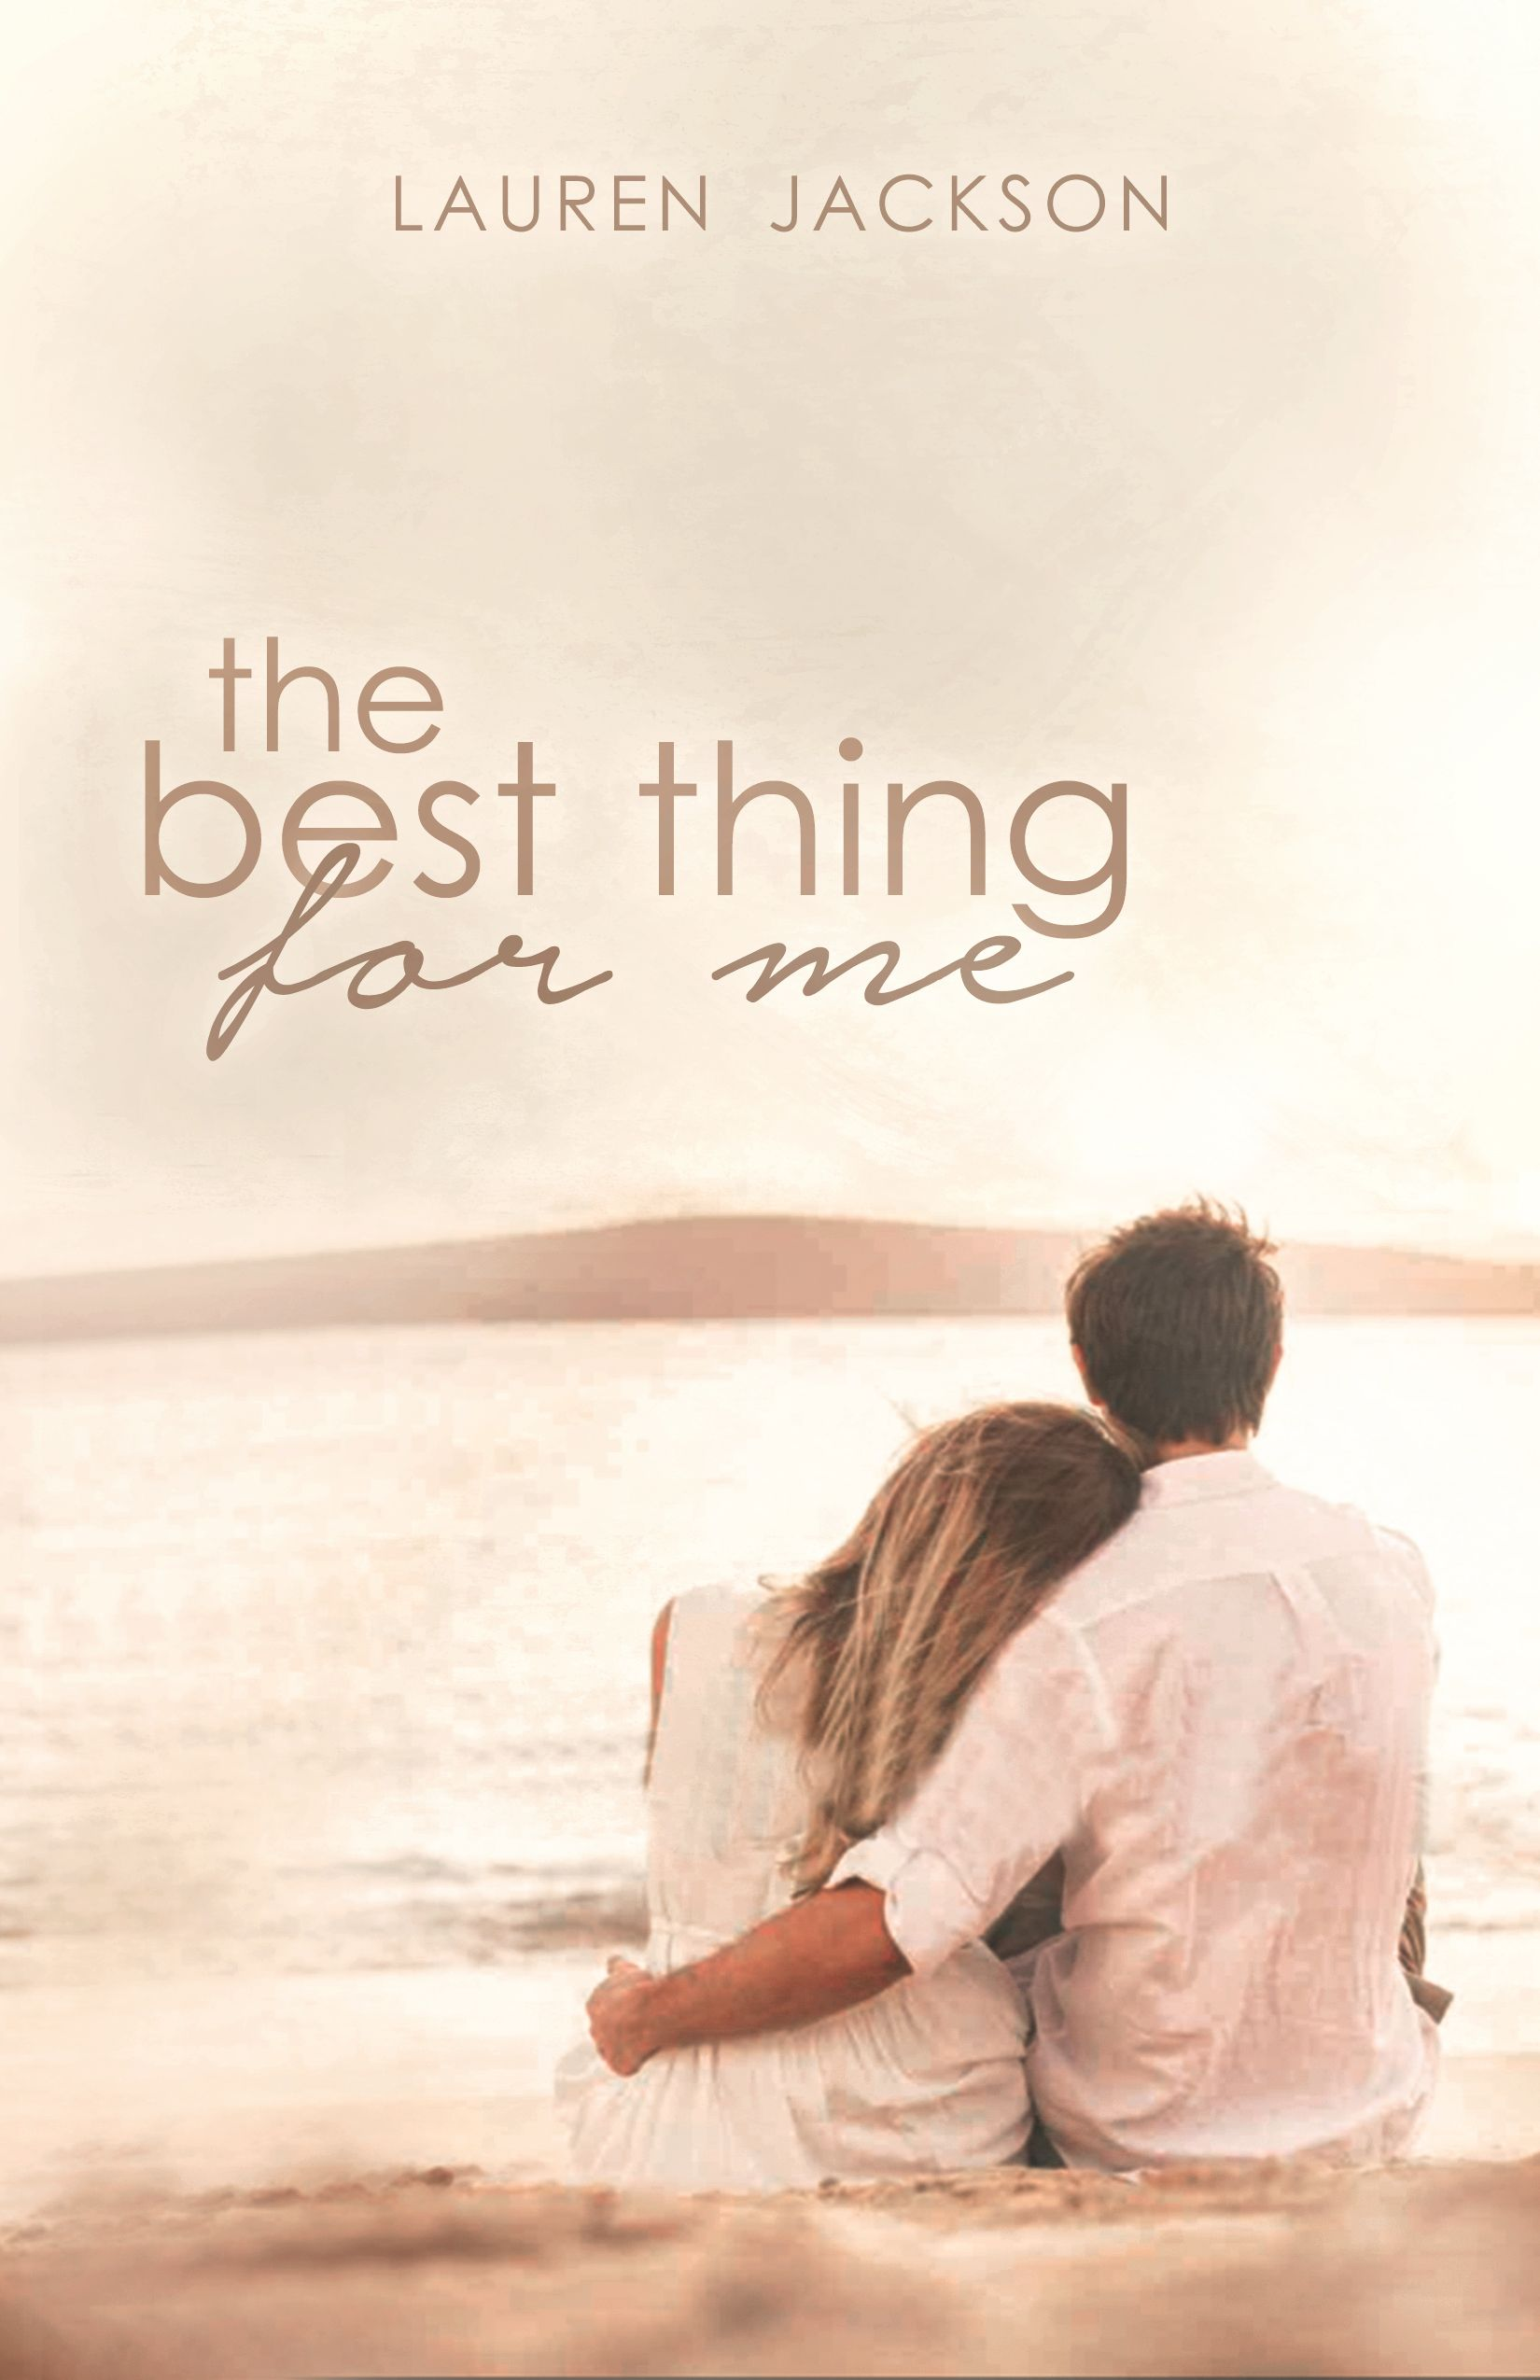 The Best Thing for Me: A Young Adult Romantic Novel by Lauren Jackson